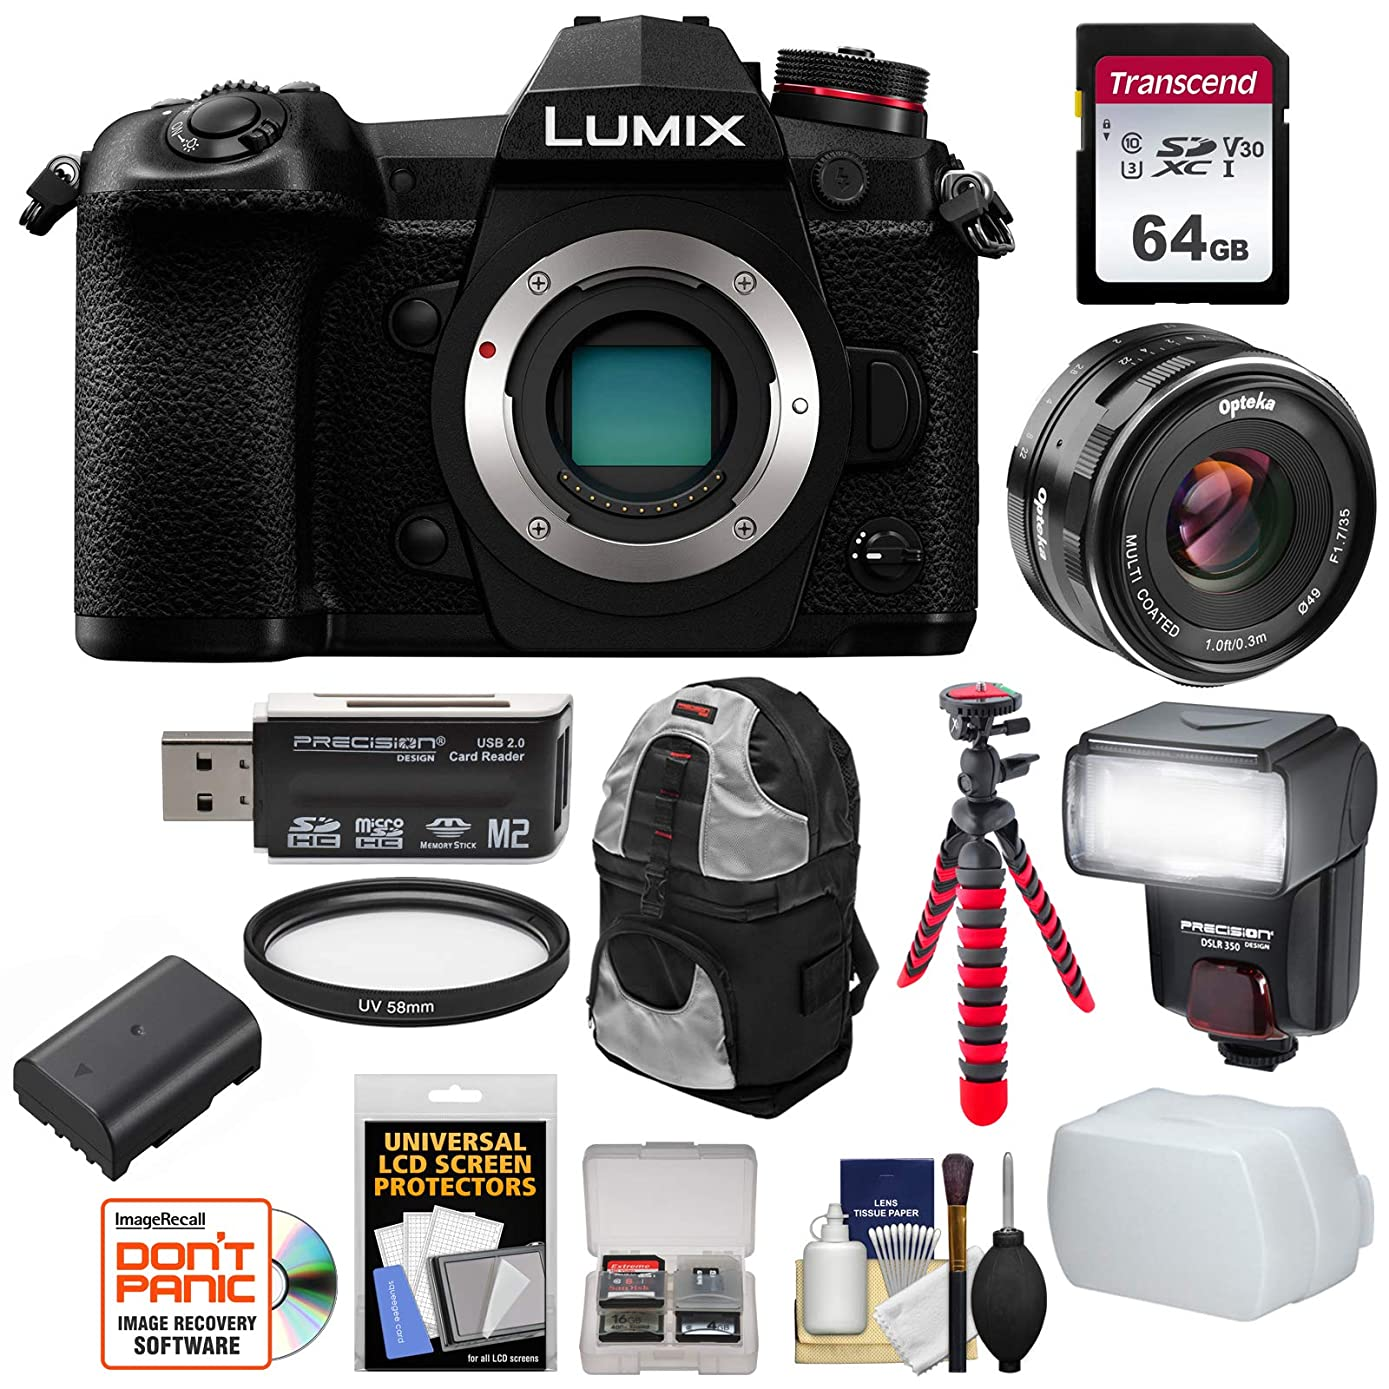 Panasonic Lumix DC-G9 4K Wi-Fi Digital Camera Body with 35mm Lens + 64GB Card + Battery + Backpack + Tripod + Flash + Kit